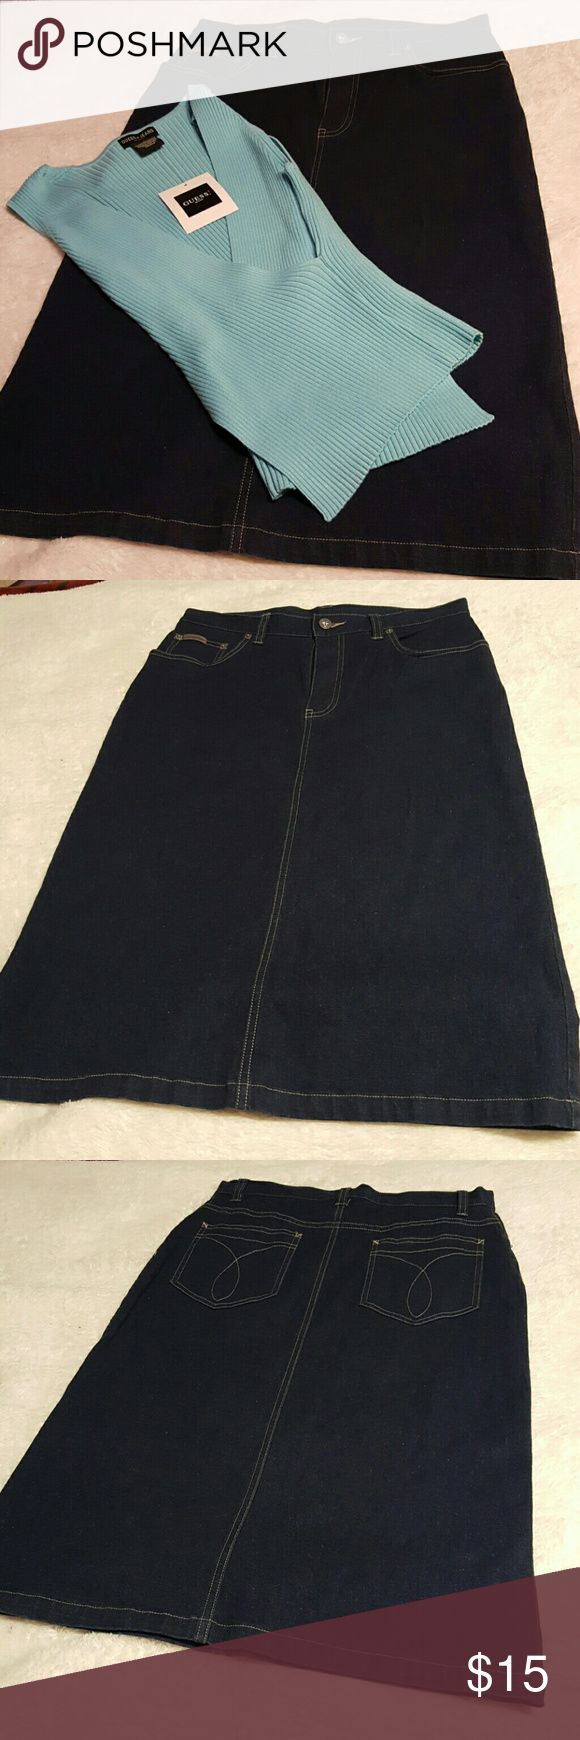 Calvin Klein jean pencil skirt Cute jean pencil skirt....this skirt has front and back pockets great for cell phones!  On slid on this beauty... Calvin Klein Jeans Skirts Pencil